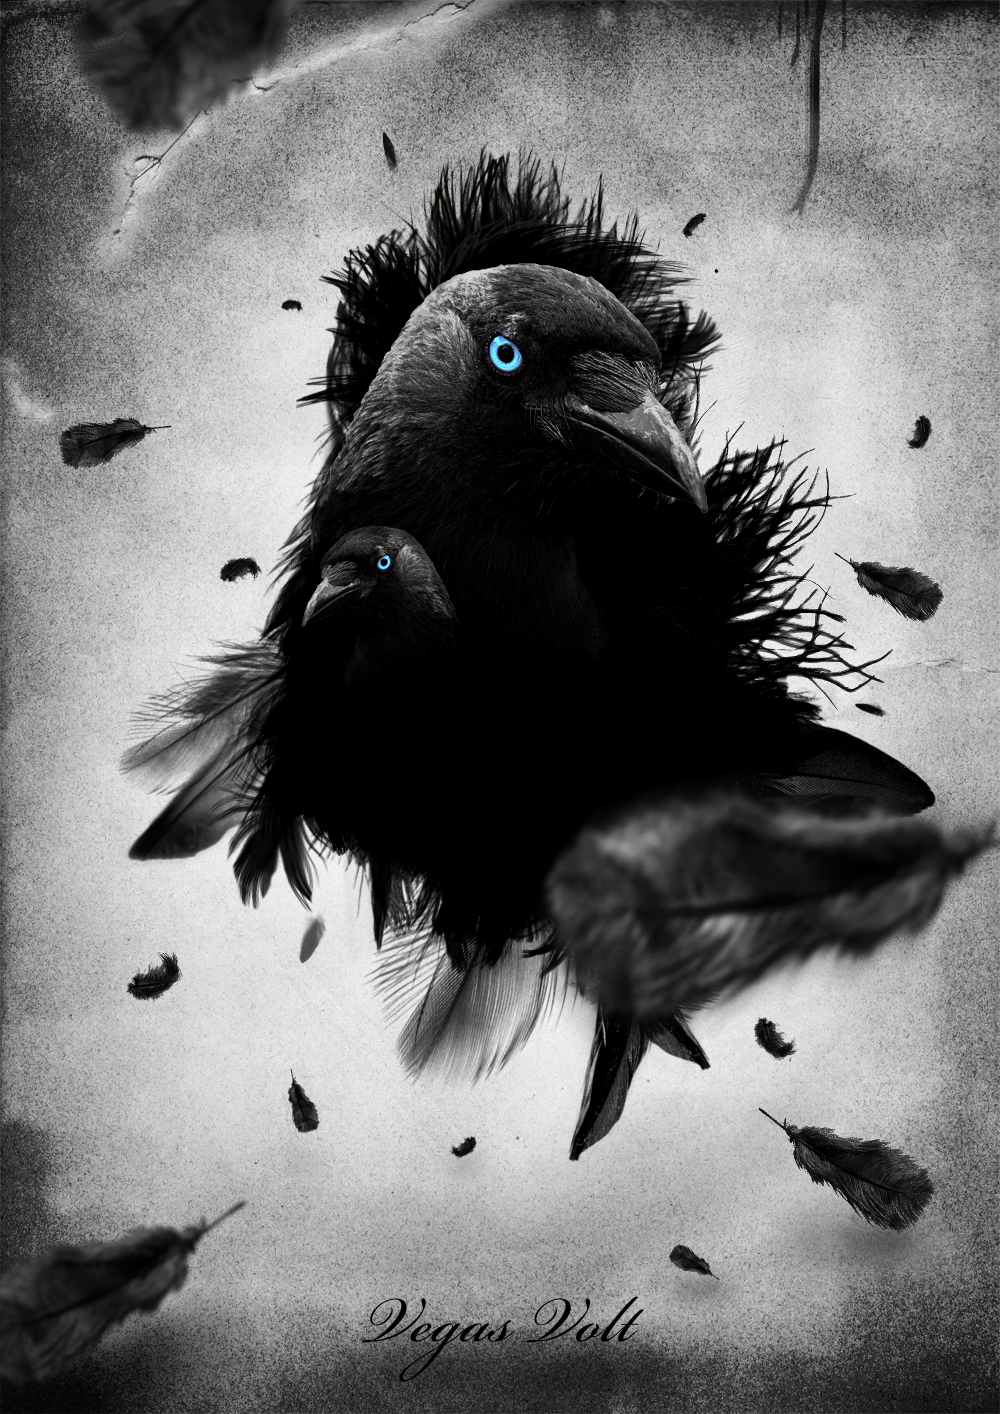 Crow Illusion by vegasvolt3ya9a on DeviantArt